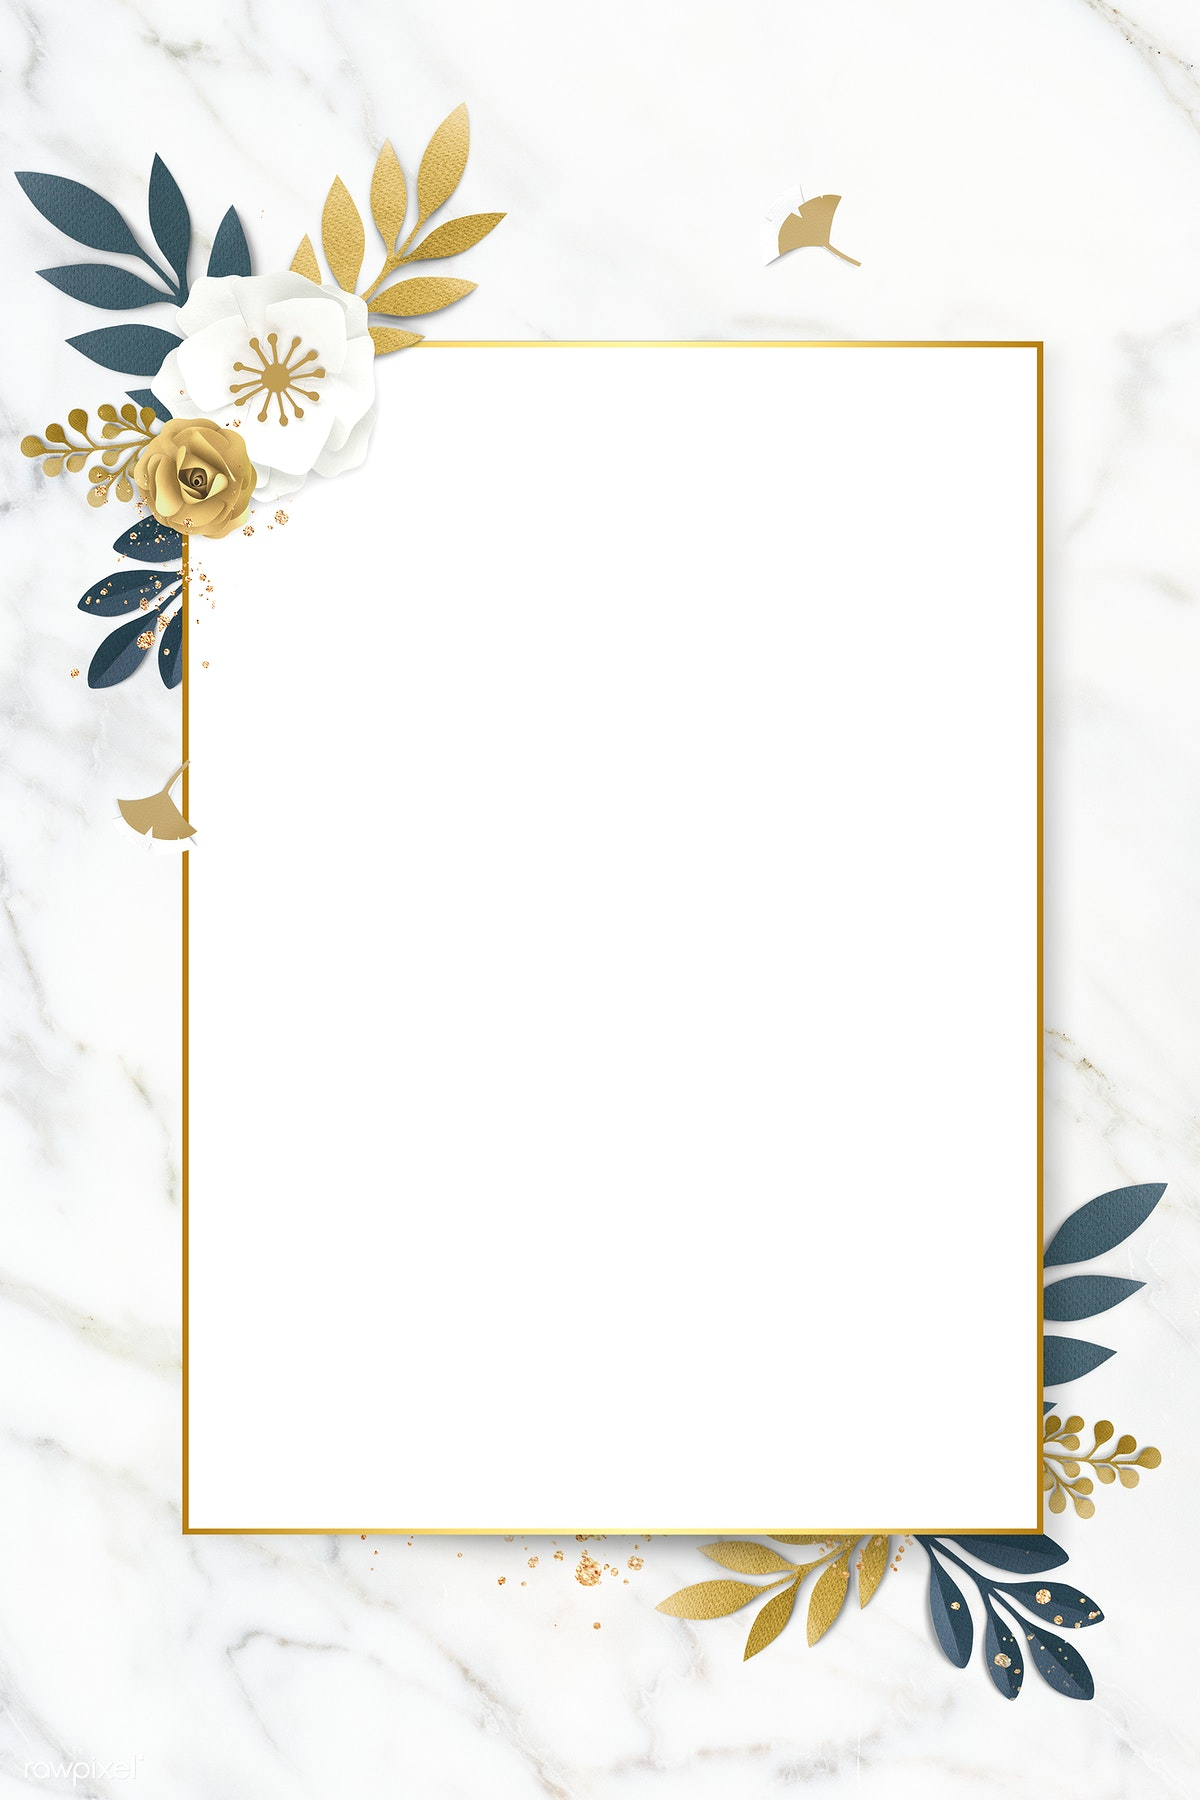 Frame Template Aesthetic Yellow